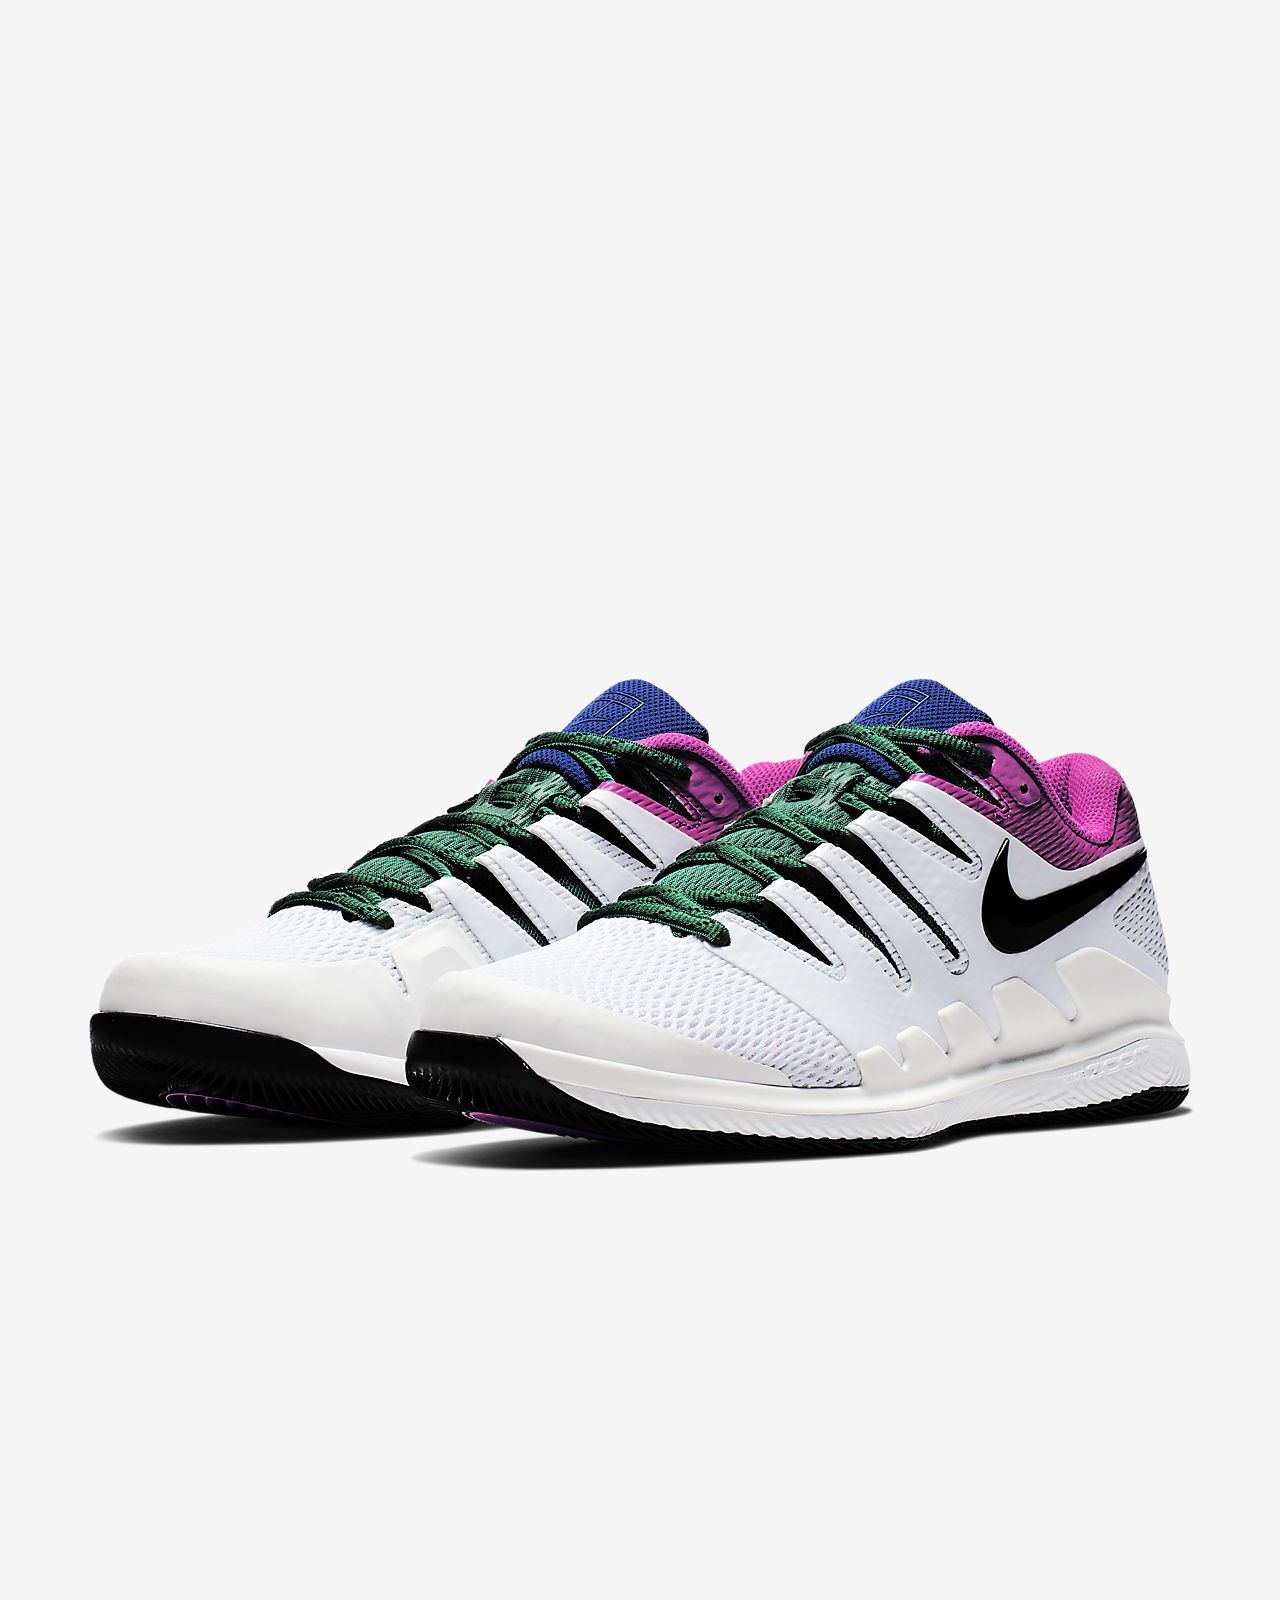 super popular 05a32 2930d ... NikeCourt Air Zoom Vapor X Men s Hard Court Tennis Shoe